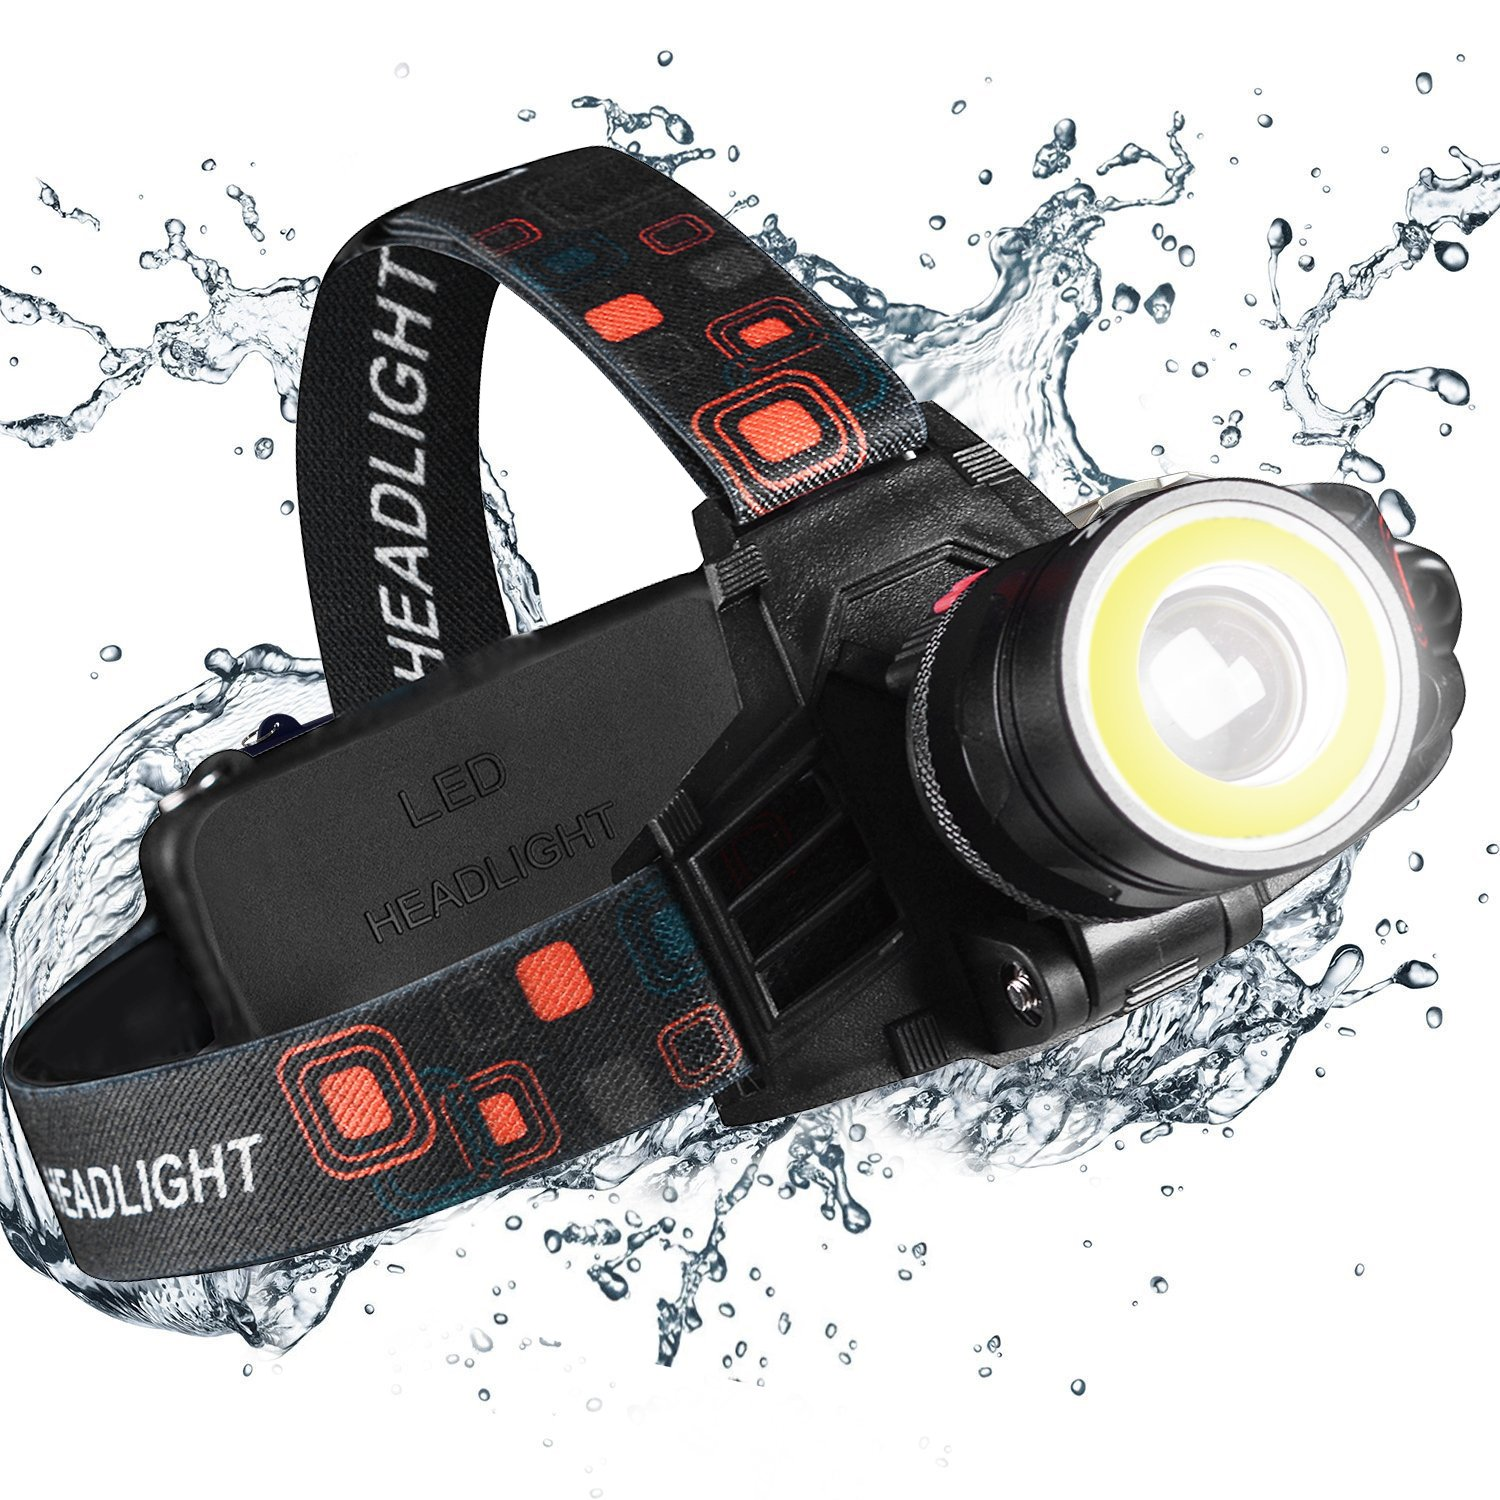 Led Headlamps Flashlight-2 Function Merge 6000 lumen xtreme Bright 9oz/Waterproof/Zoomable/18650 Rechargeable/Work Head Light for Construction Electrician DIY& Outdoor Camping